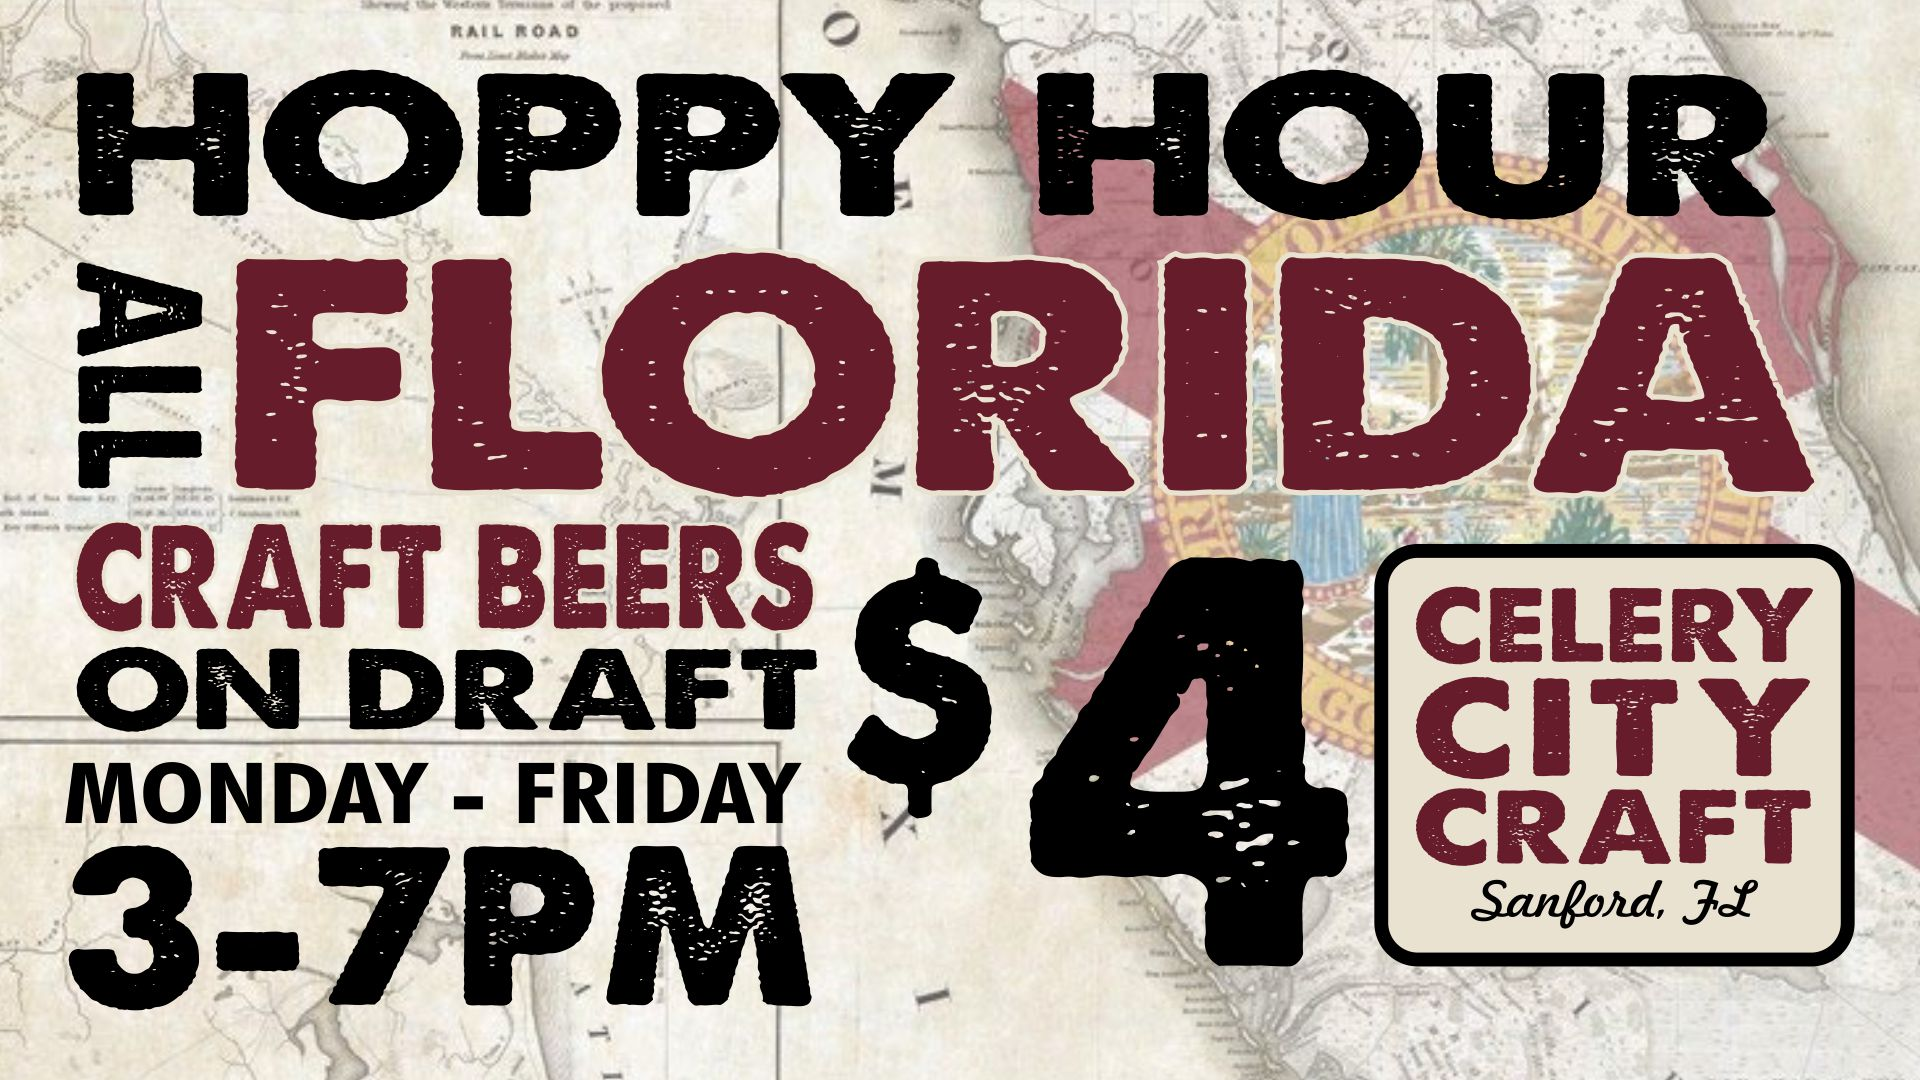 Happy Hour at Celery City Craft